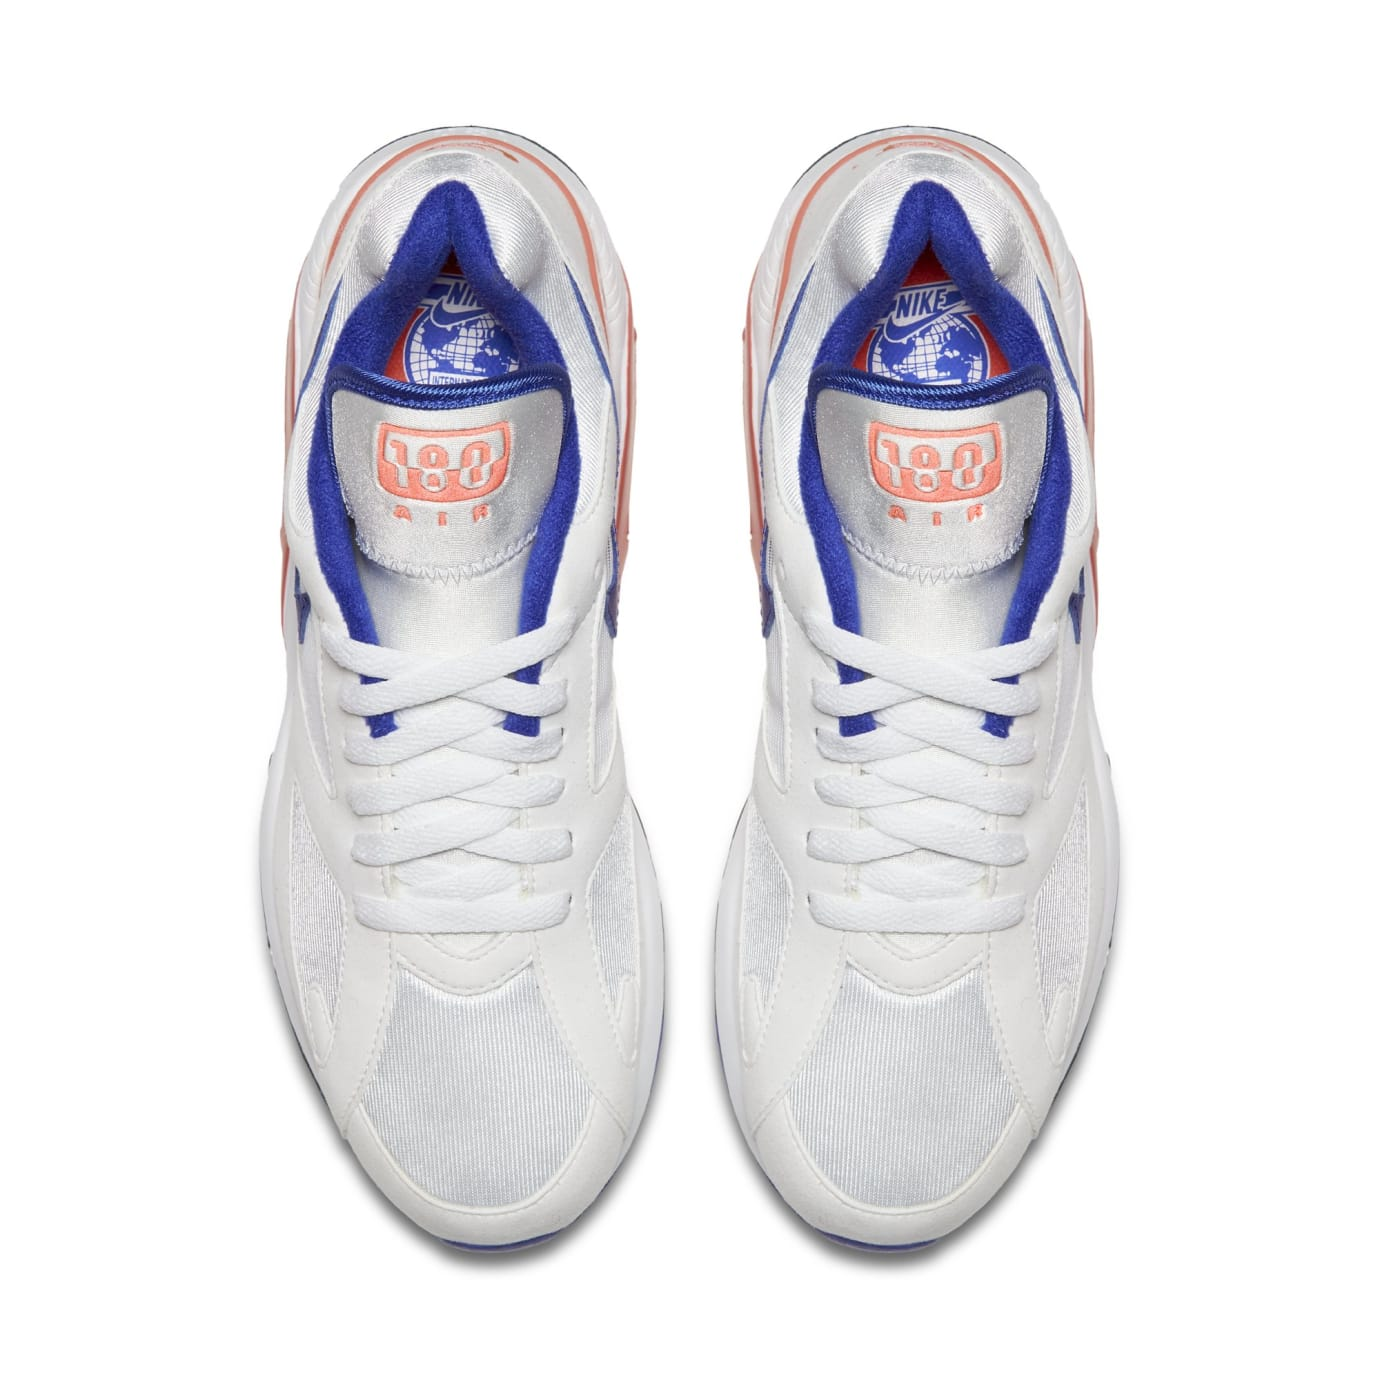 Nike Air Max 180 OG White/Ultramarine-Solar Red-Black 615287-100 (Top)